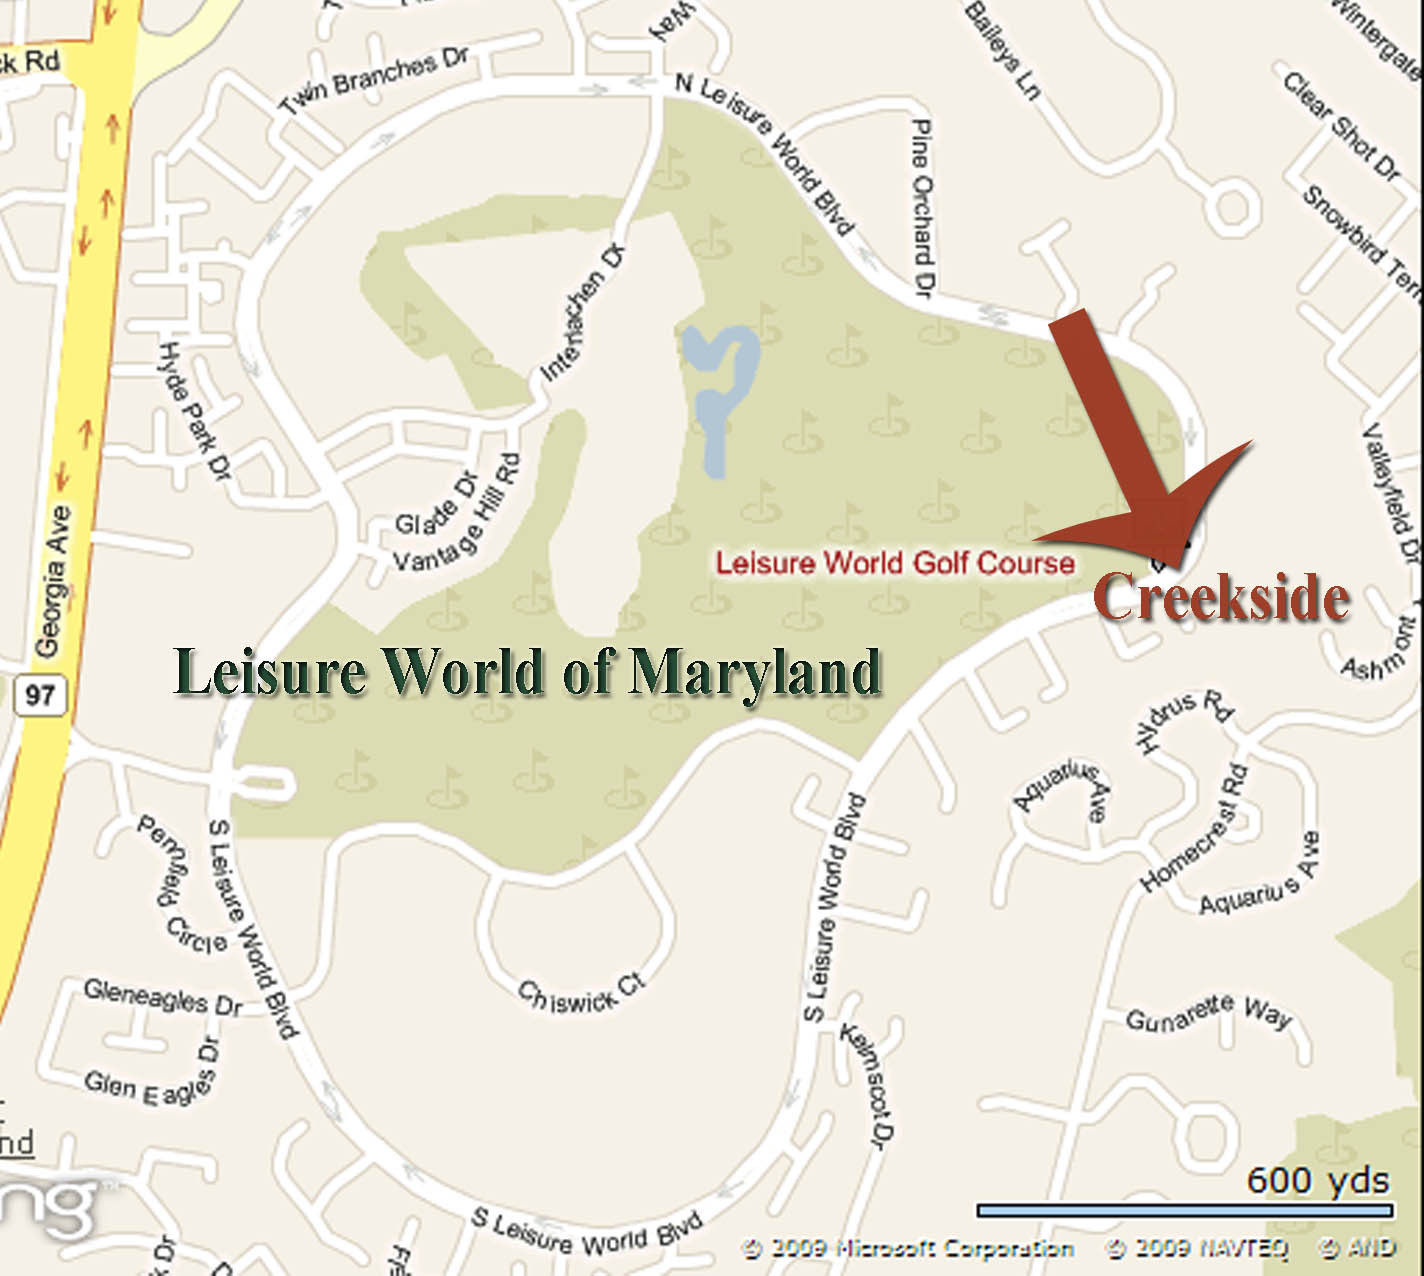 Creekside on Map